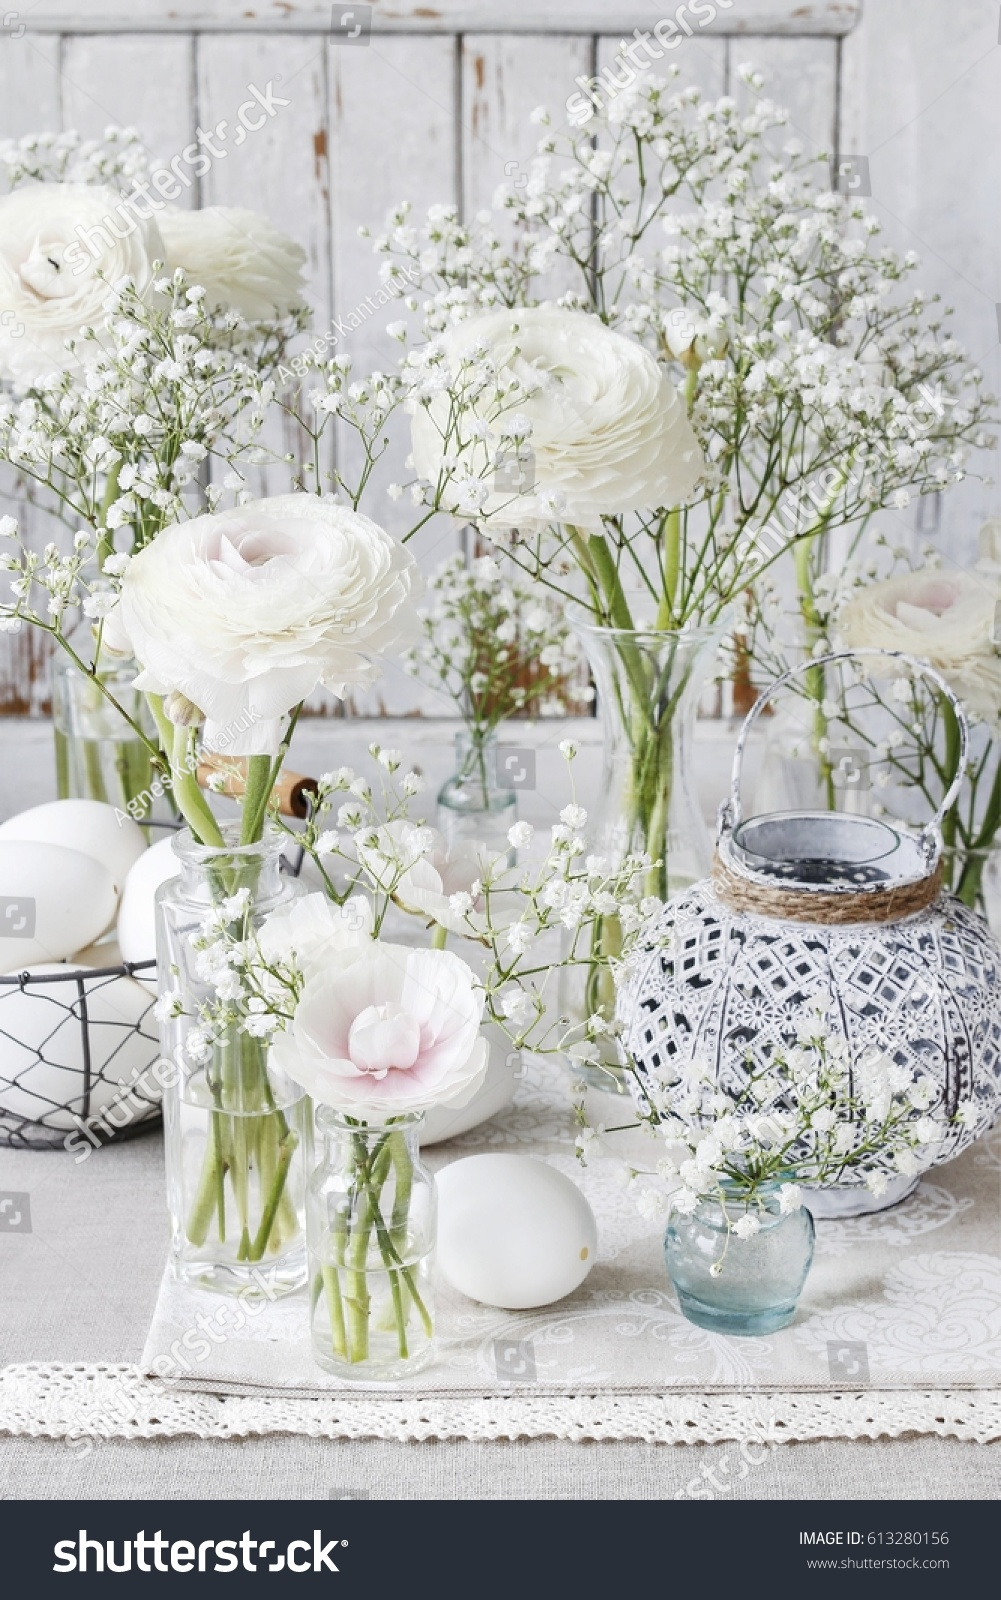 Floral Arrangement With Ranunculus Flowers And White Gypsophila